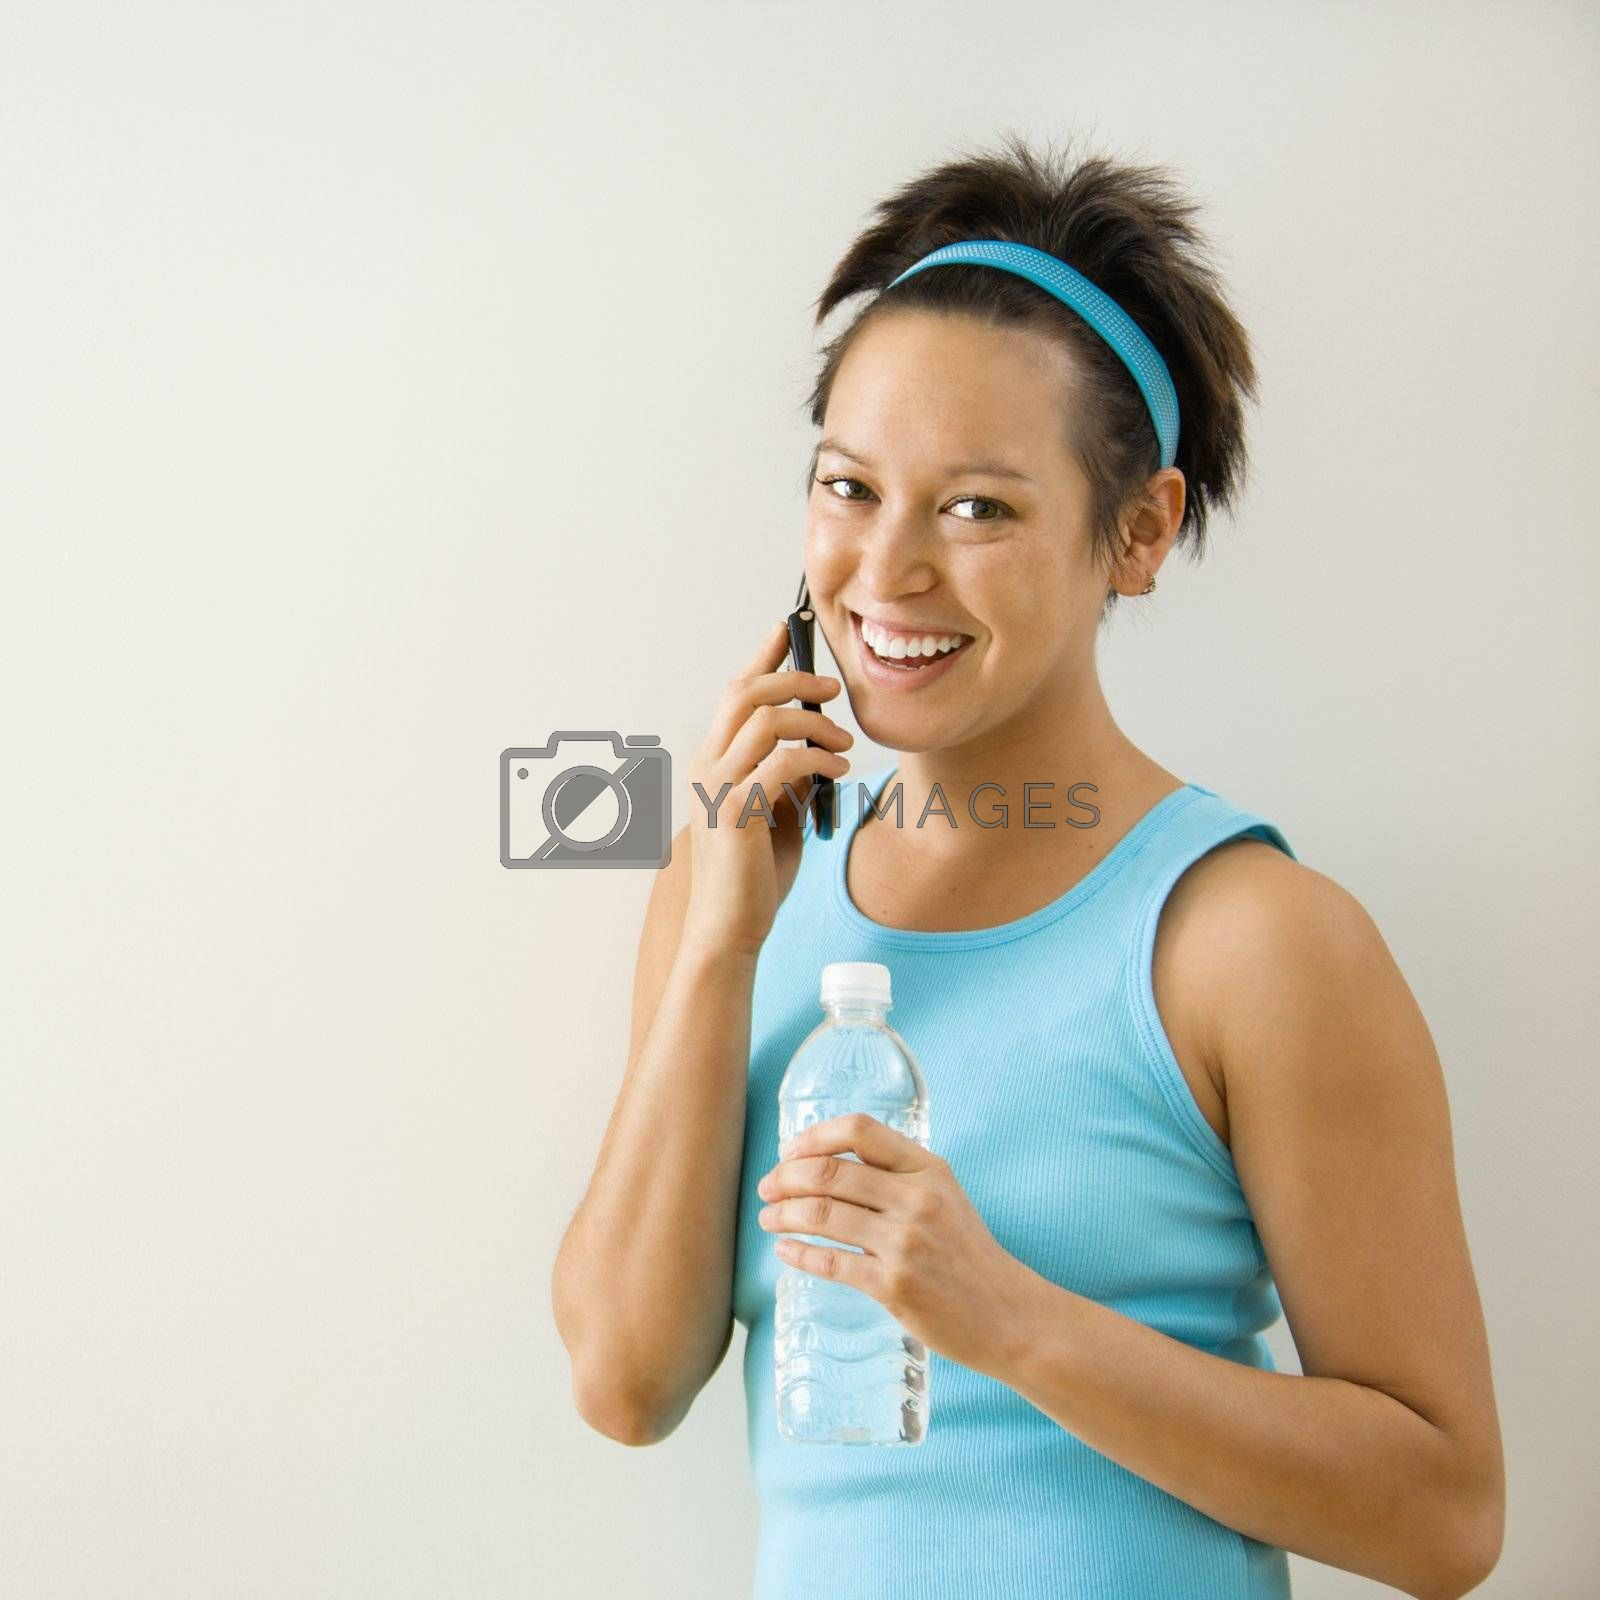 Young woman in fitness clothing holding bottled water talking on cellphone smiling.